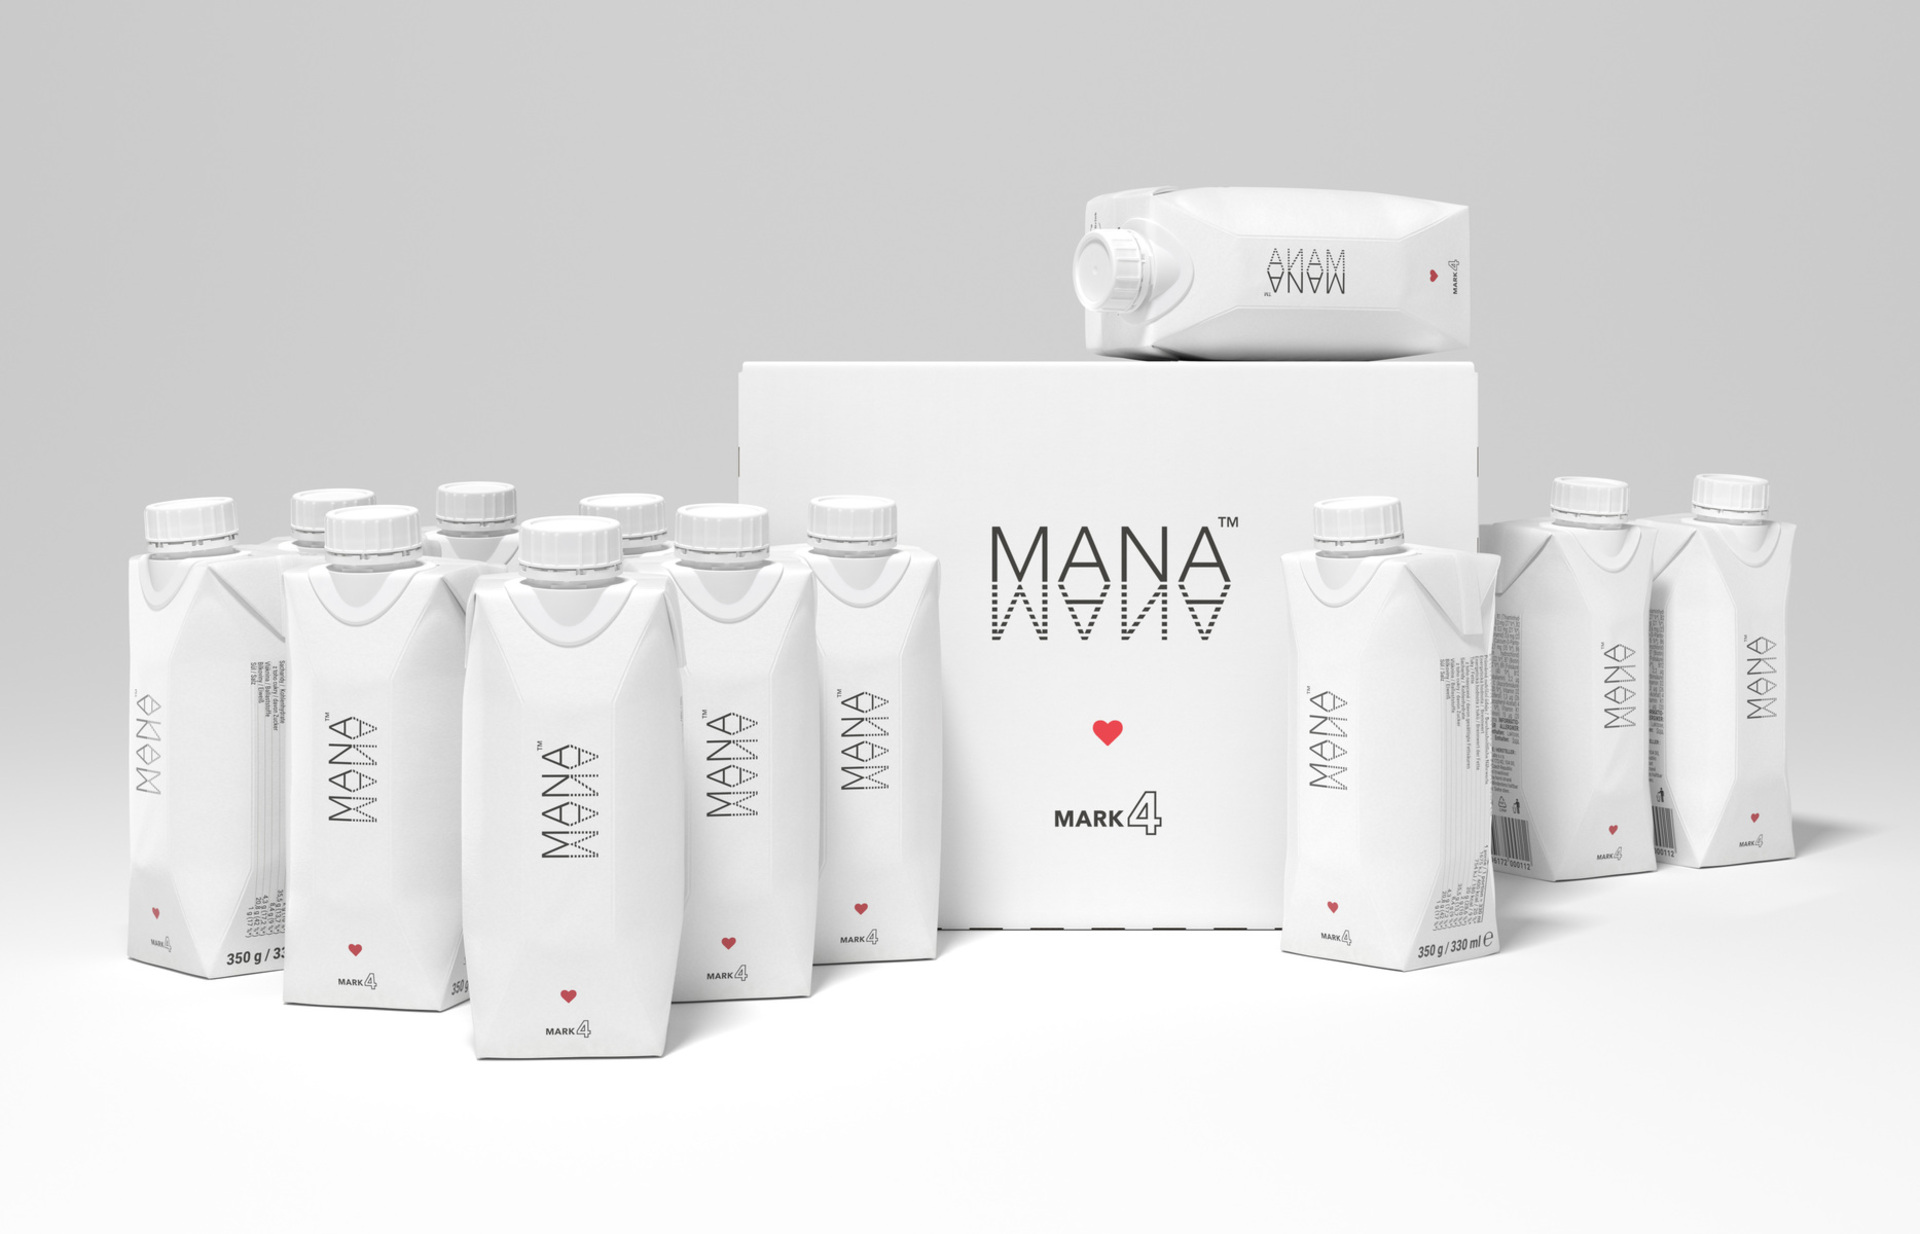 MANA DRINK Mark 4 - 12 pack krabice